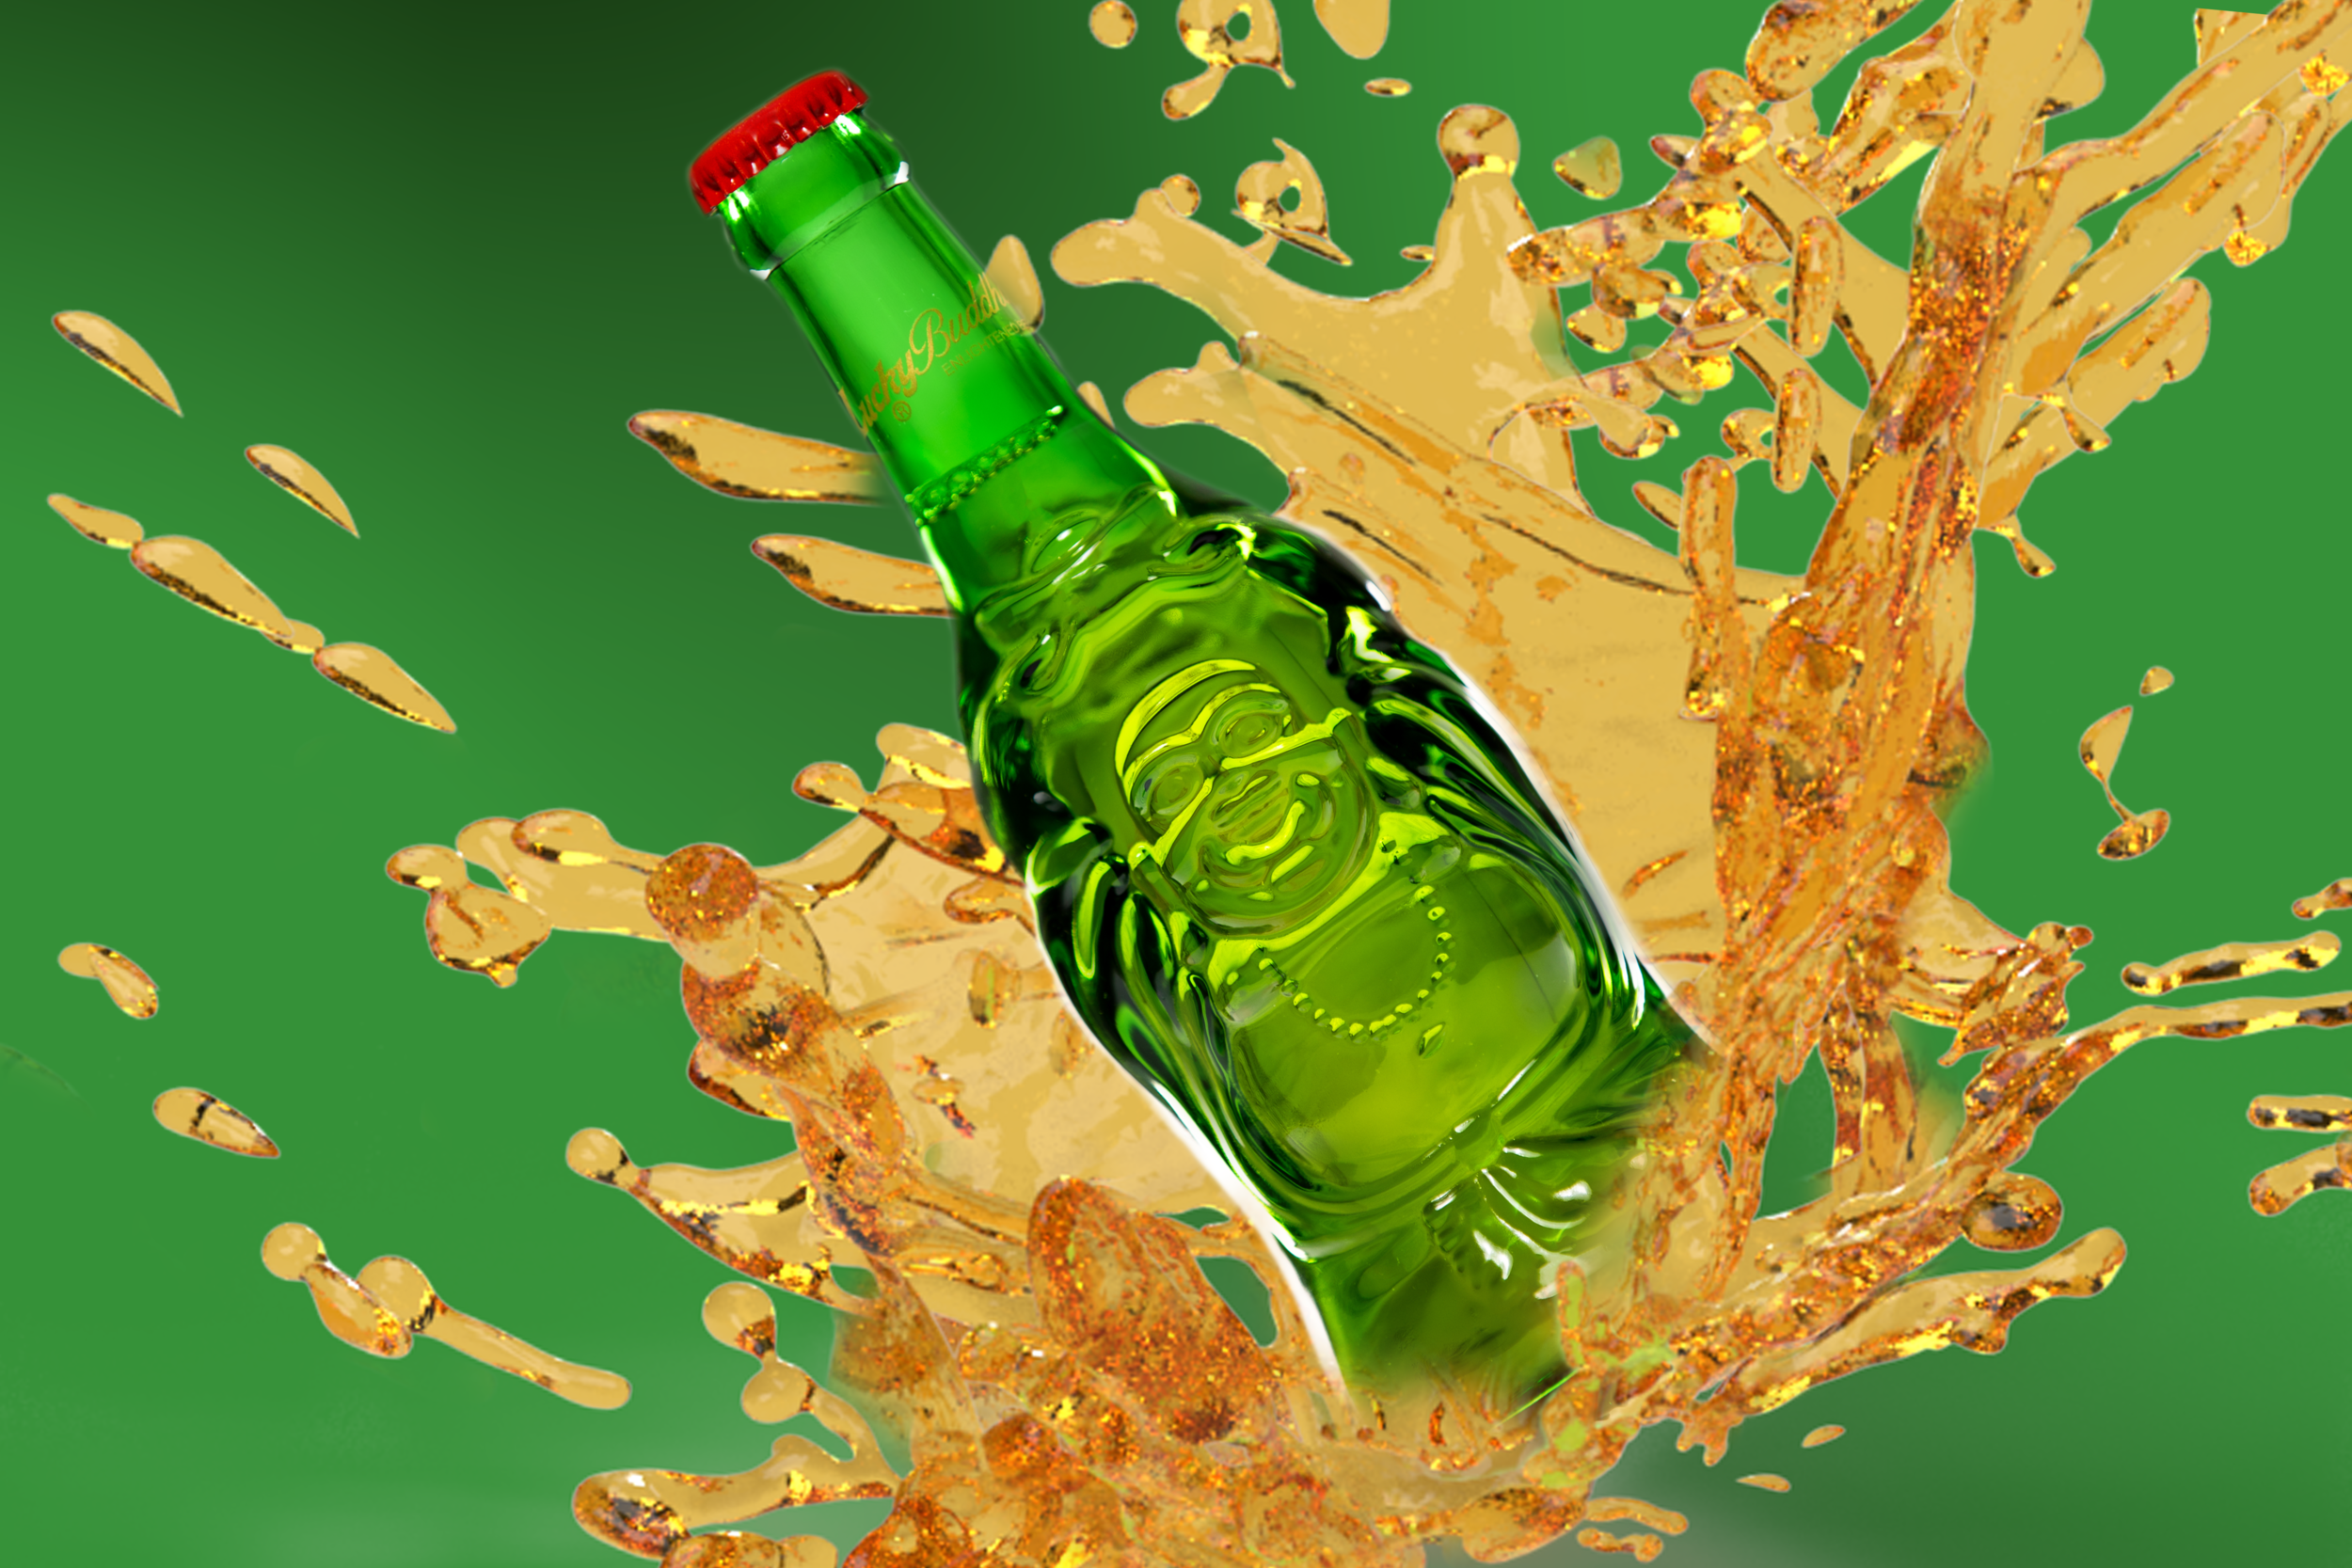 Lucky Beer Product Photo Mannys Creations Test.jpg